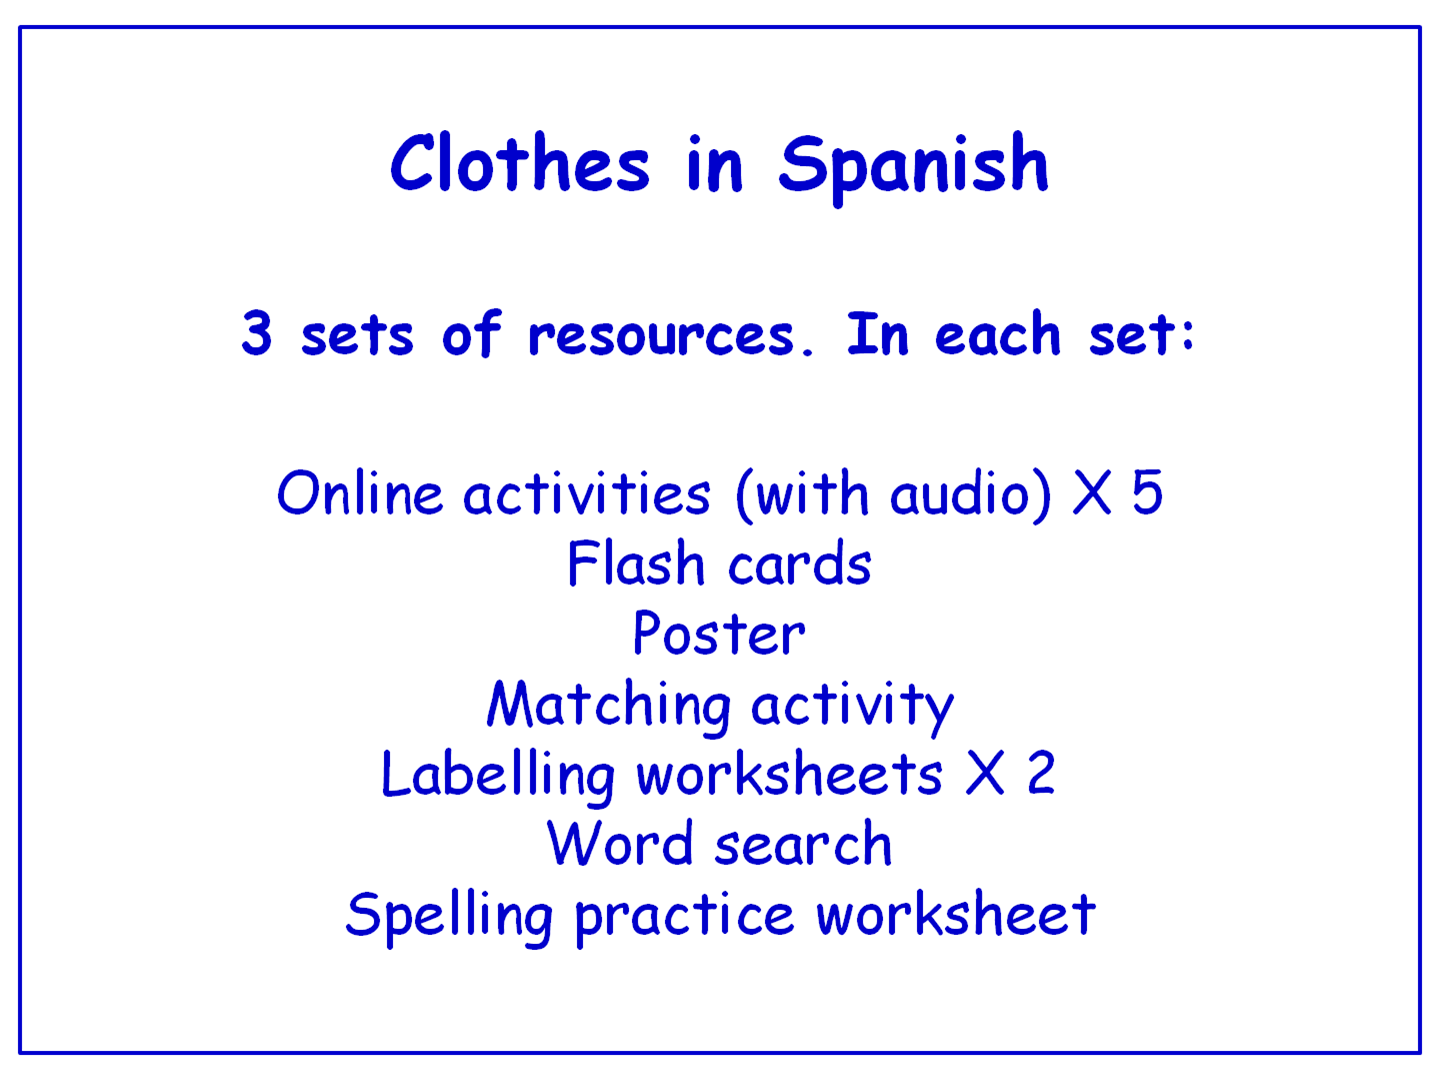 Clothes in Spanish  Worksheets, Games, Activities and Flash Cards (with audio) Bundle (3 sets)